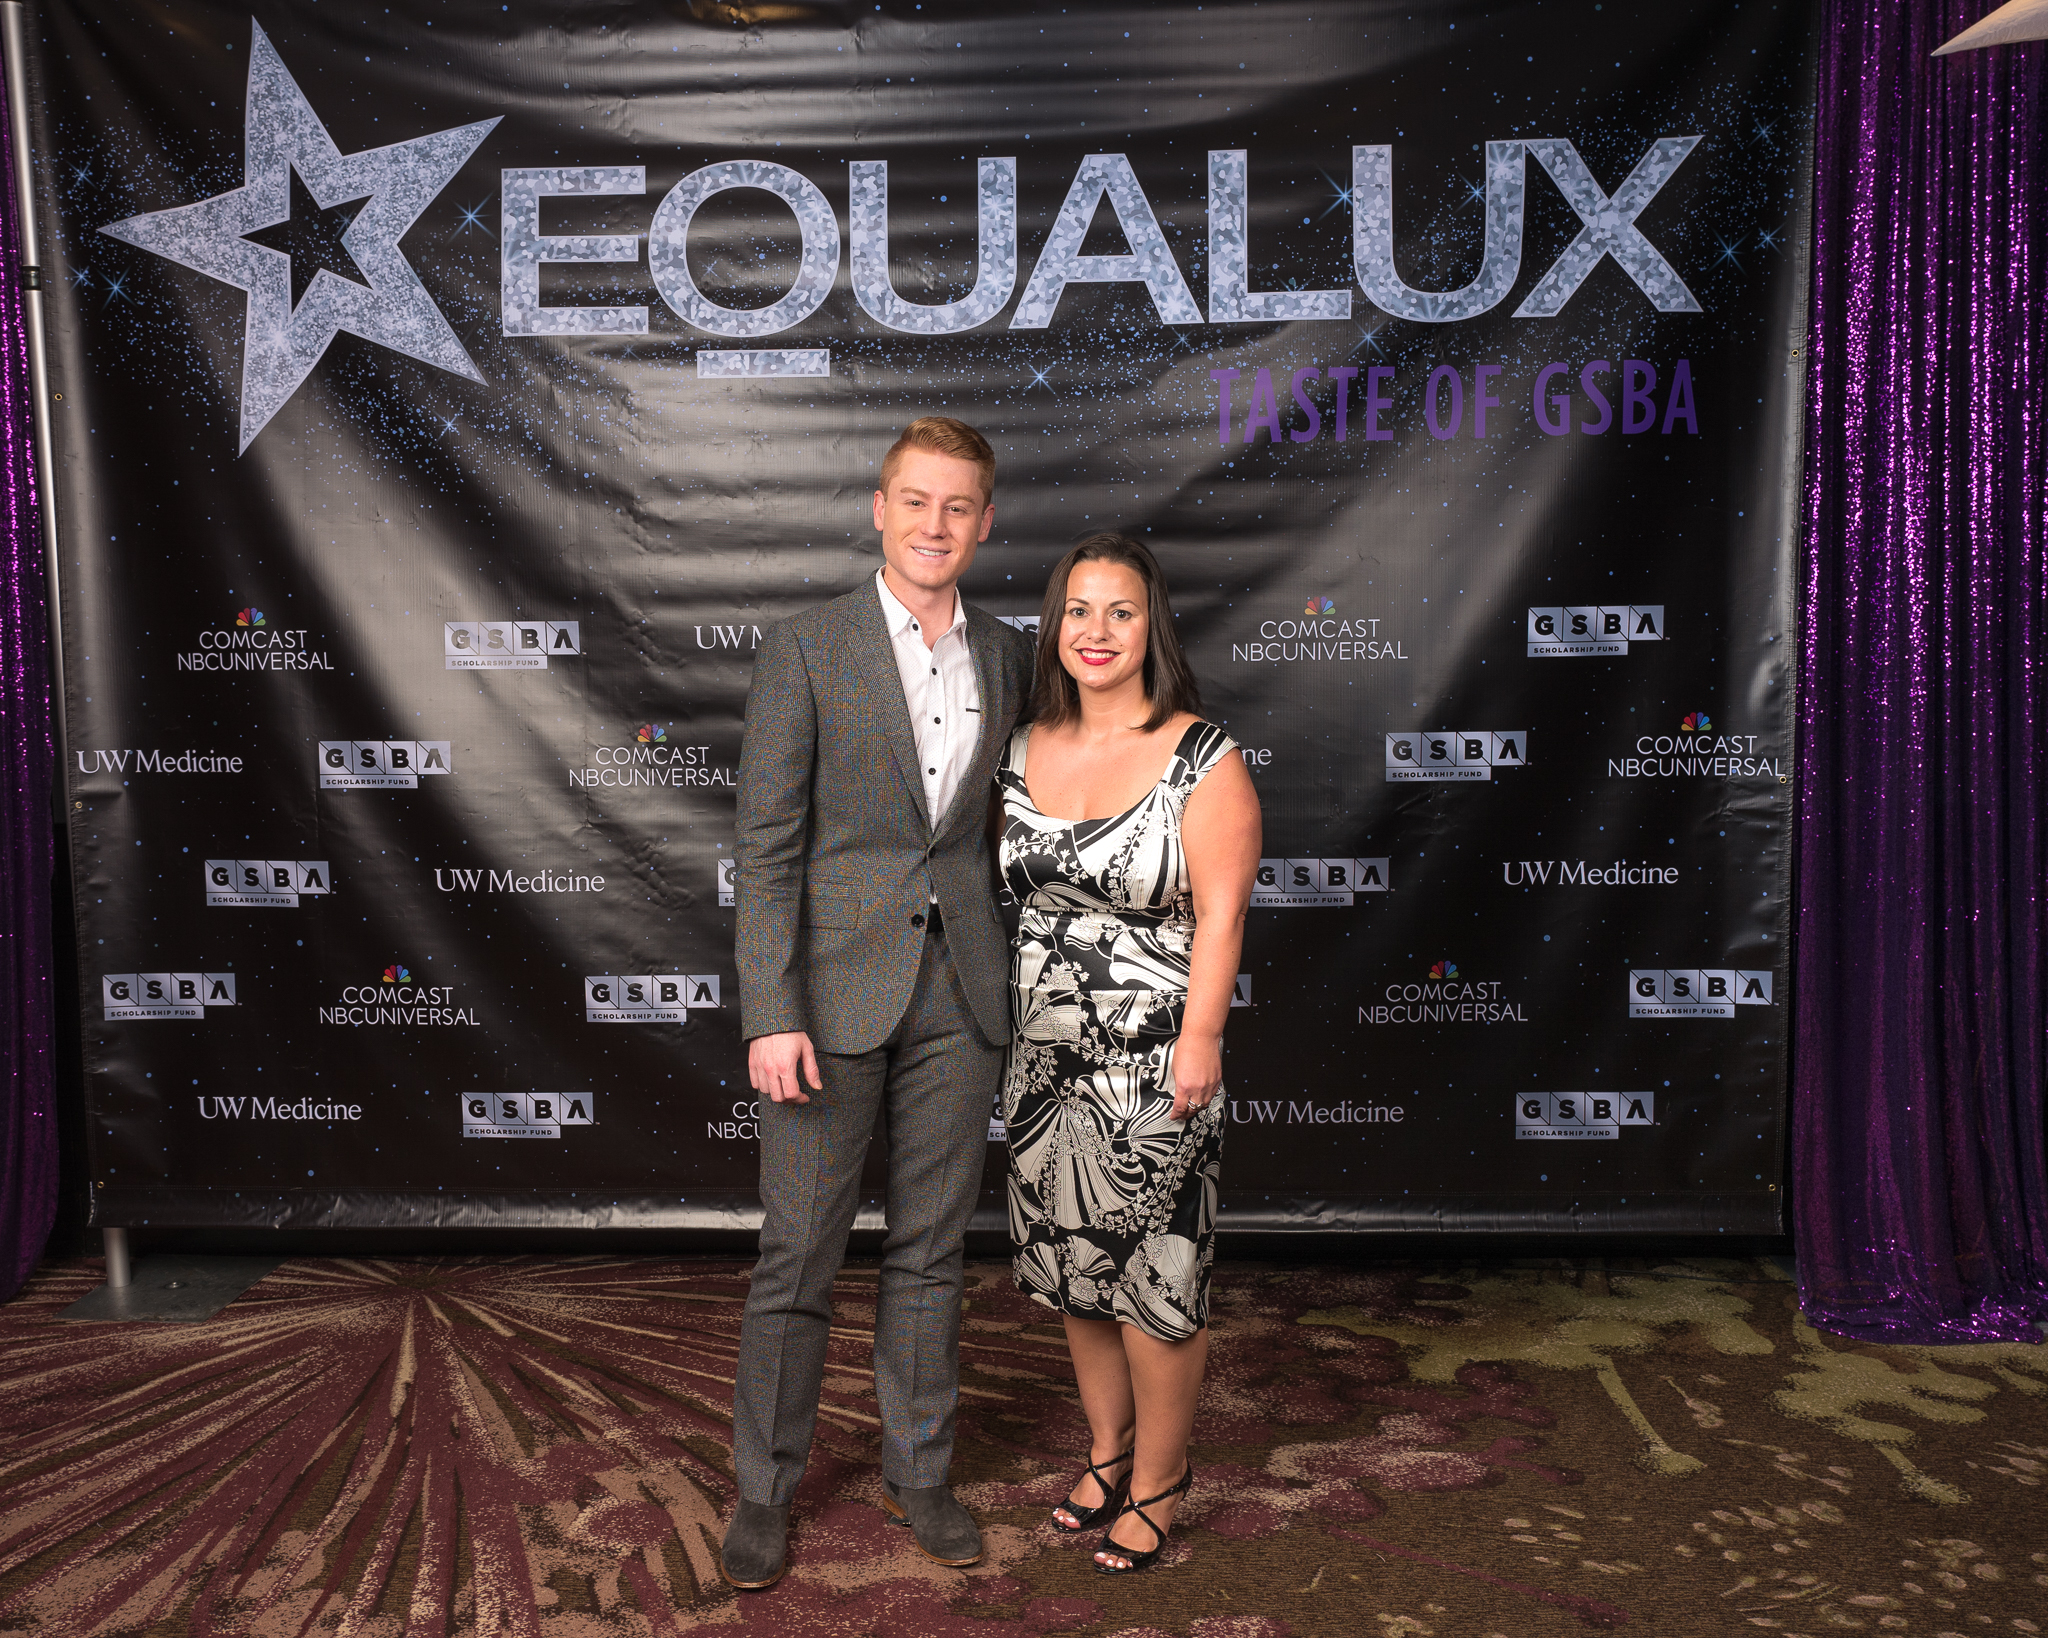 111718_GSBA EQUALUX at The Westin Seattle (Credit- Nate Gowdy)-139.jpg